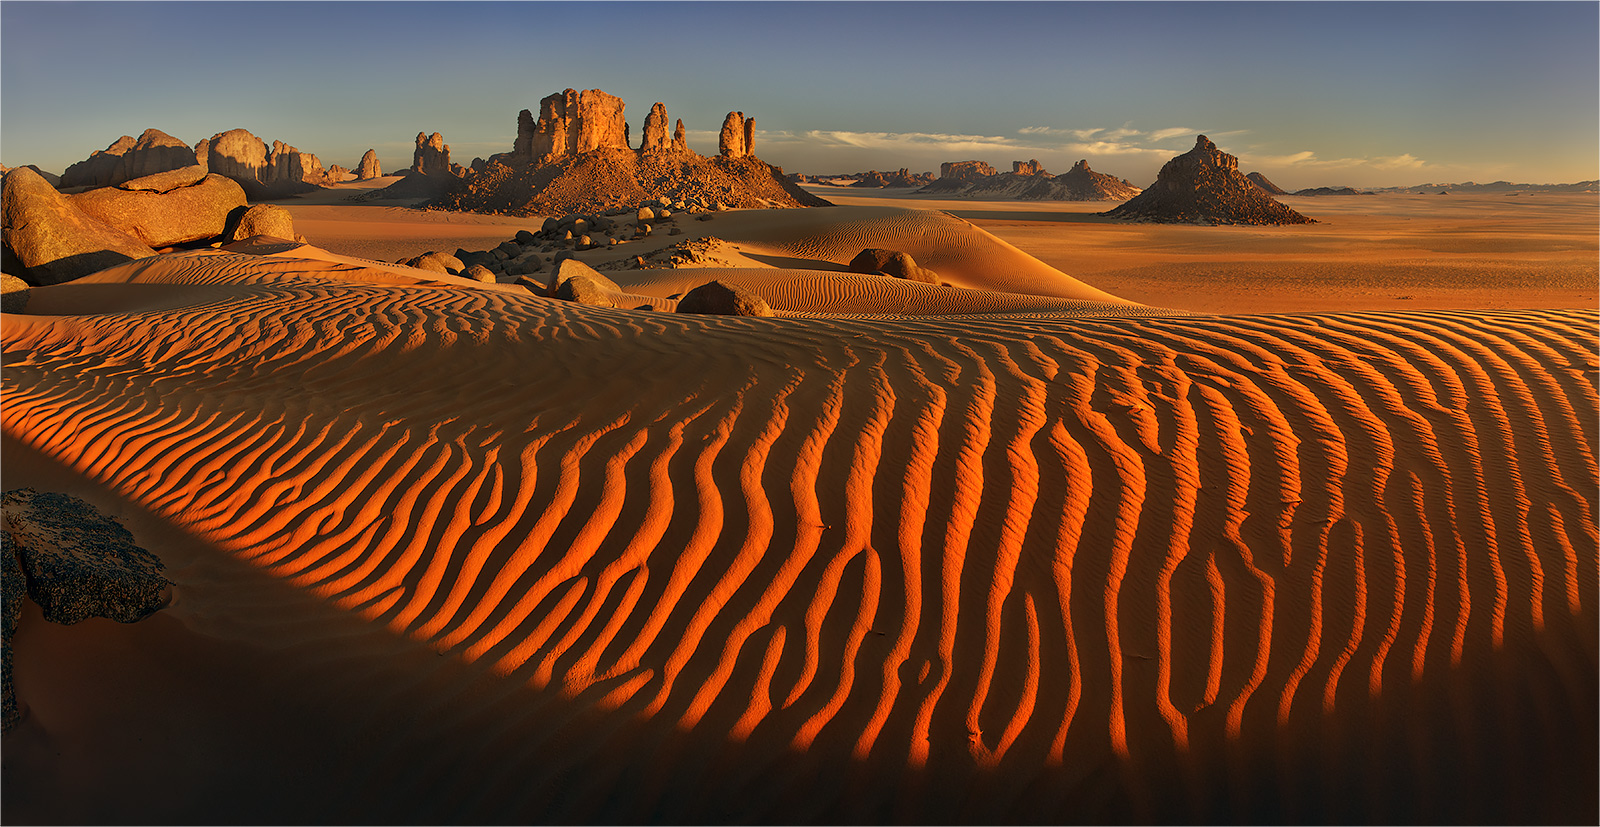 The heart of the Sahara by Yury Pustovoy